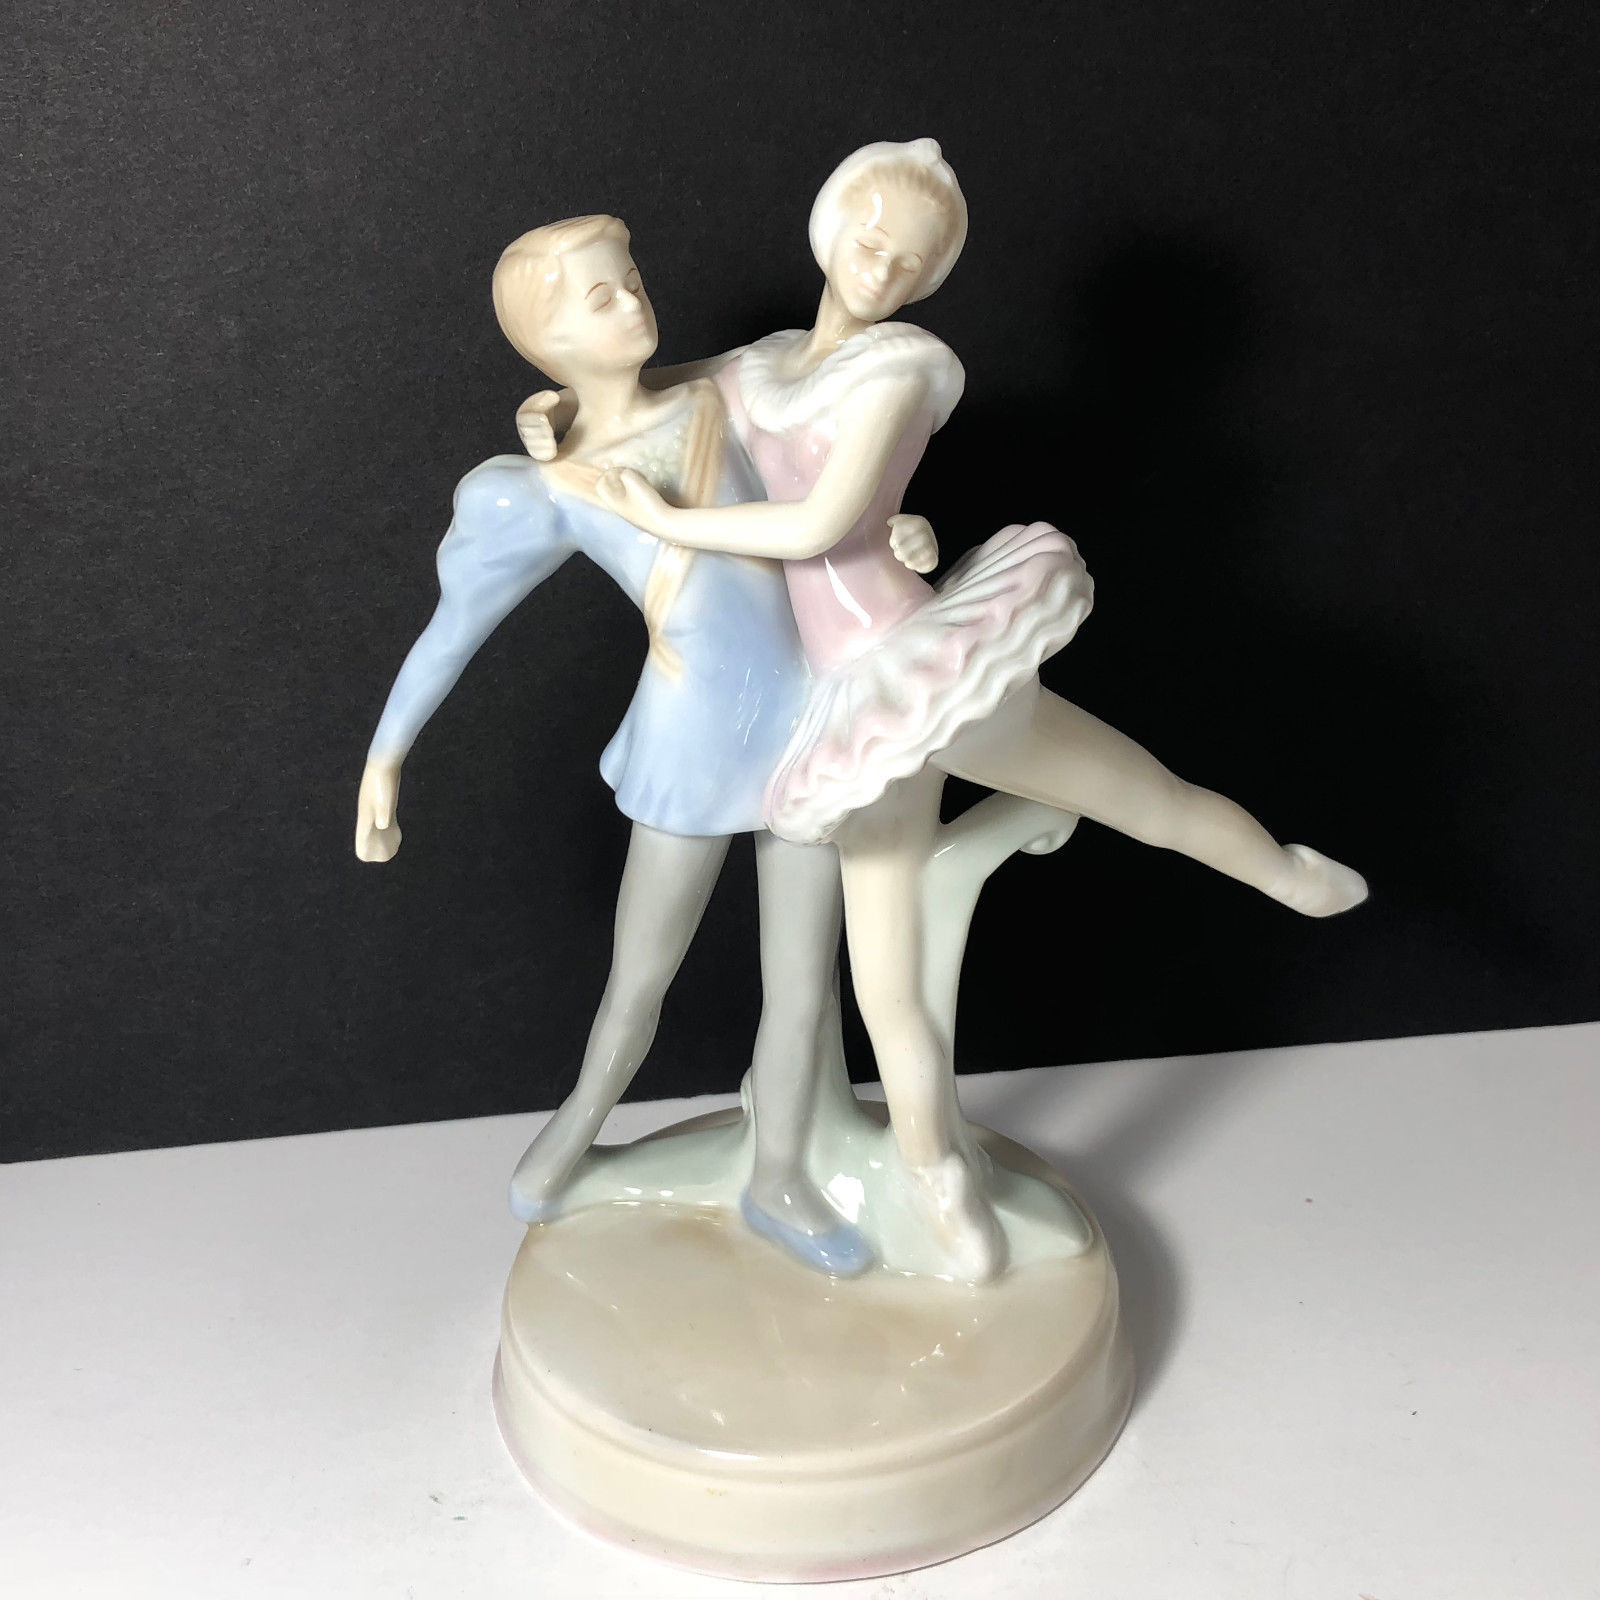 Primary image for VINTAGE PORCELAIN BALLERINA FIGURINE STATUE SCULPTURE RUSS COUPLE DANCING DANCE